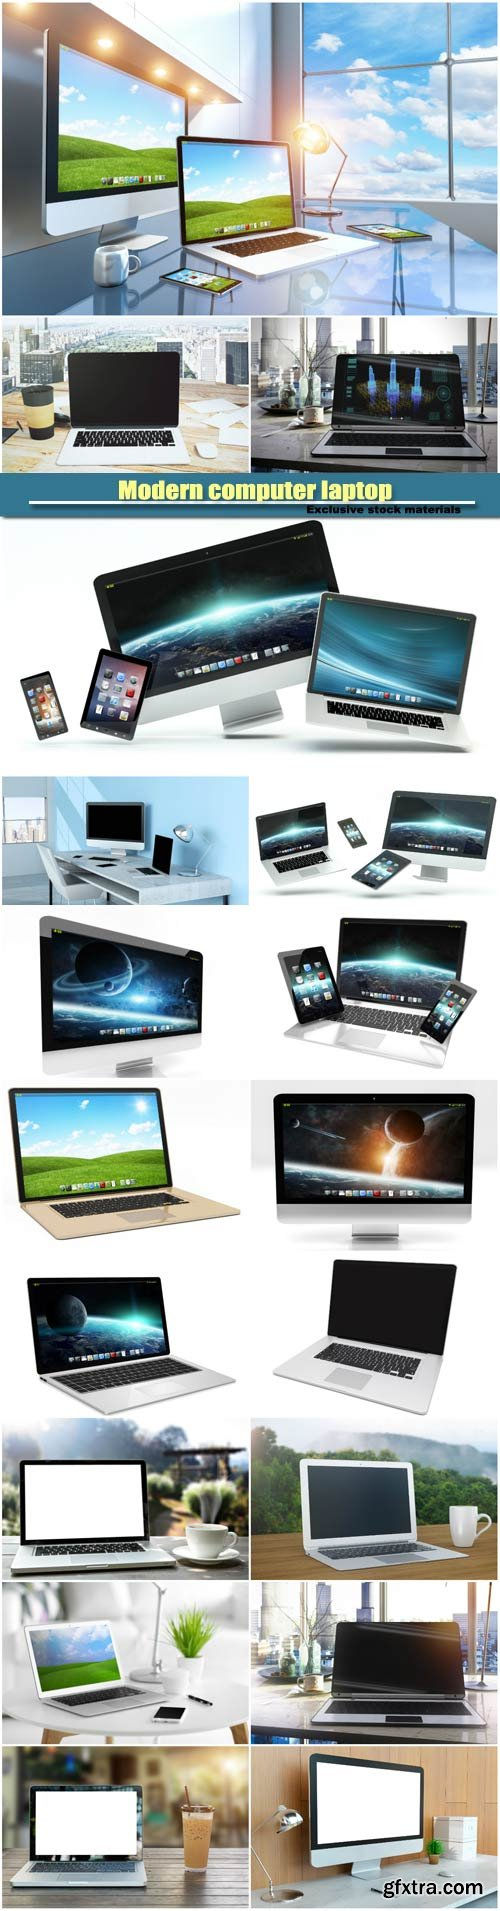 Modern computer laptop, mobile phone and tablet floating